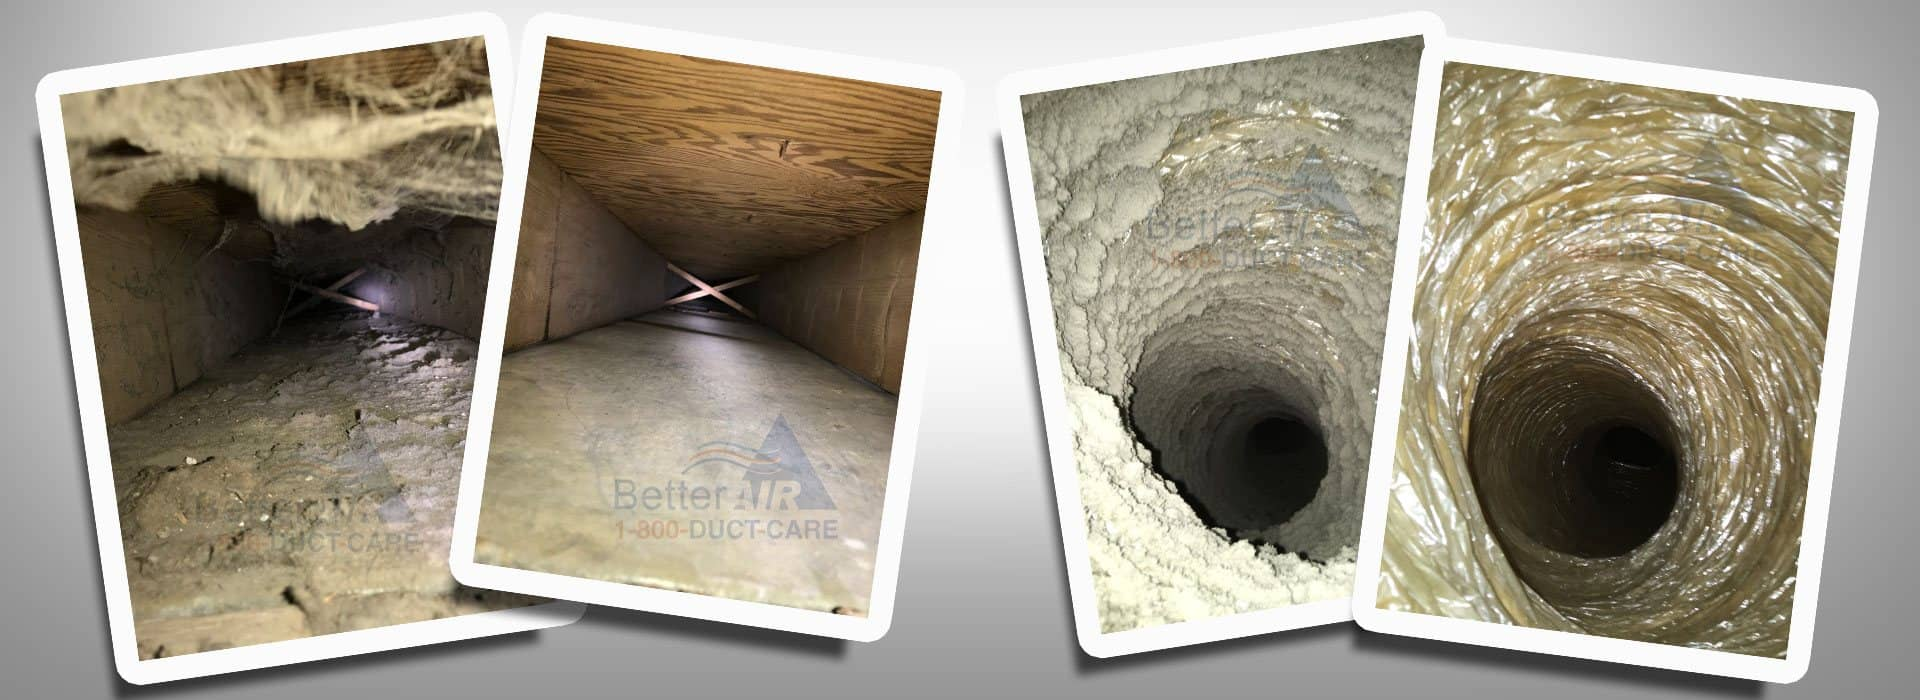 Better Air Residential Air Duct Cleaning